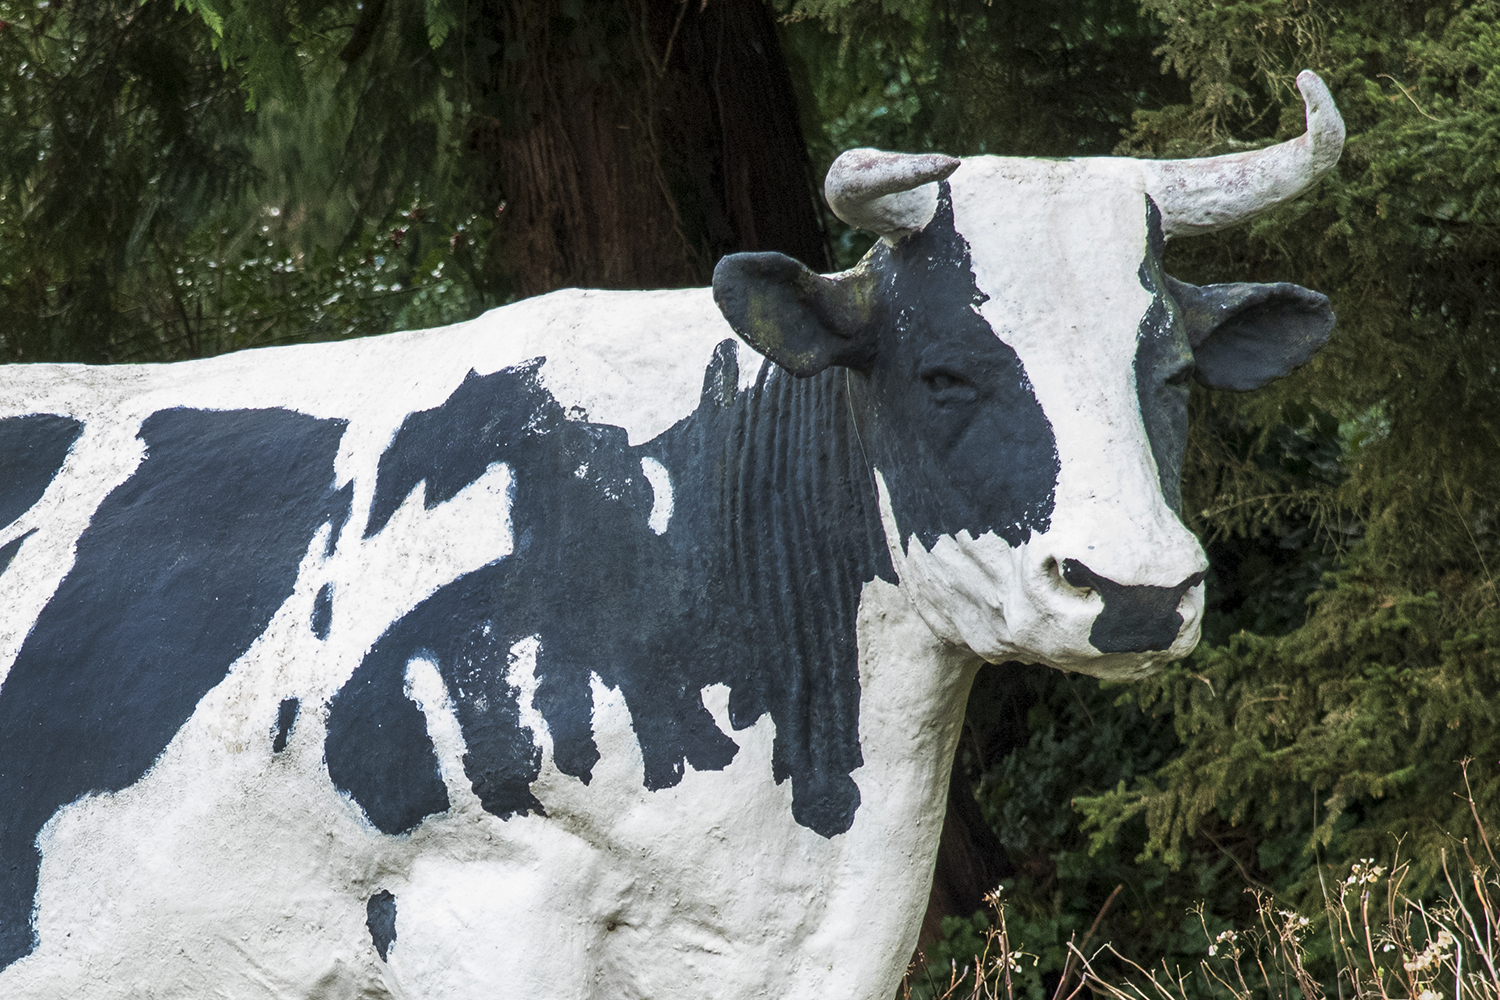 At the age of 12, Possum Sweetheart traveled on to greener pastures leaving the farmers and her milker to grieve her passing. And in 1928, the world's first ever known statue of a Holstein cow was constructed in honor of Segis Pietertje Prospect. (Rachael Jones / Seattle Refined)